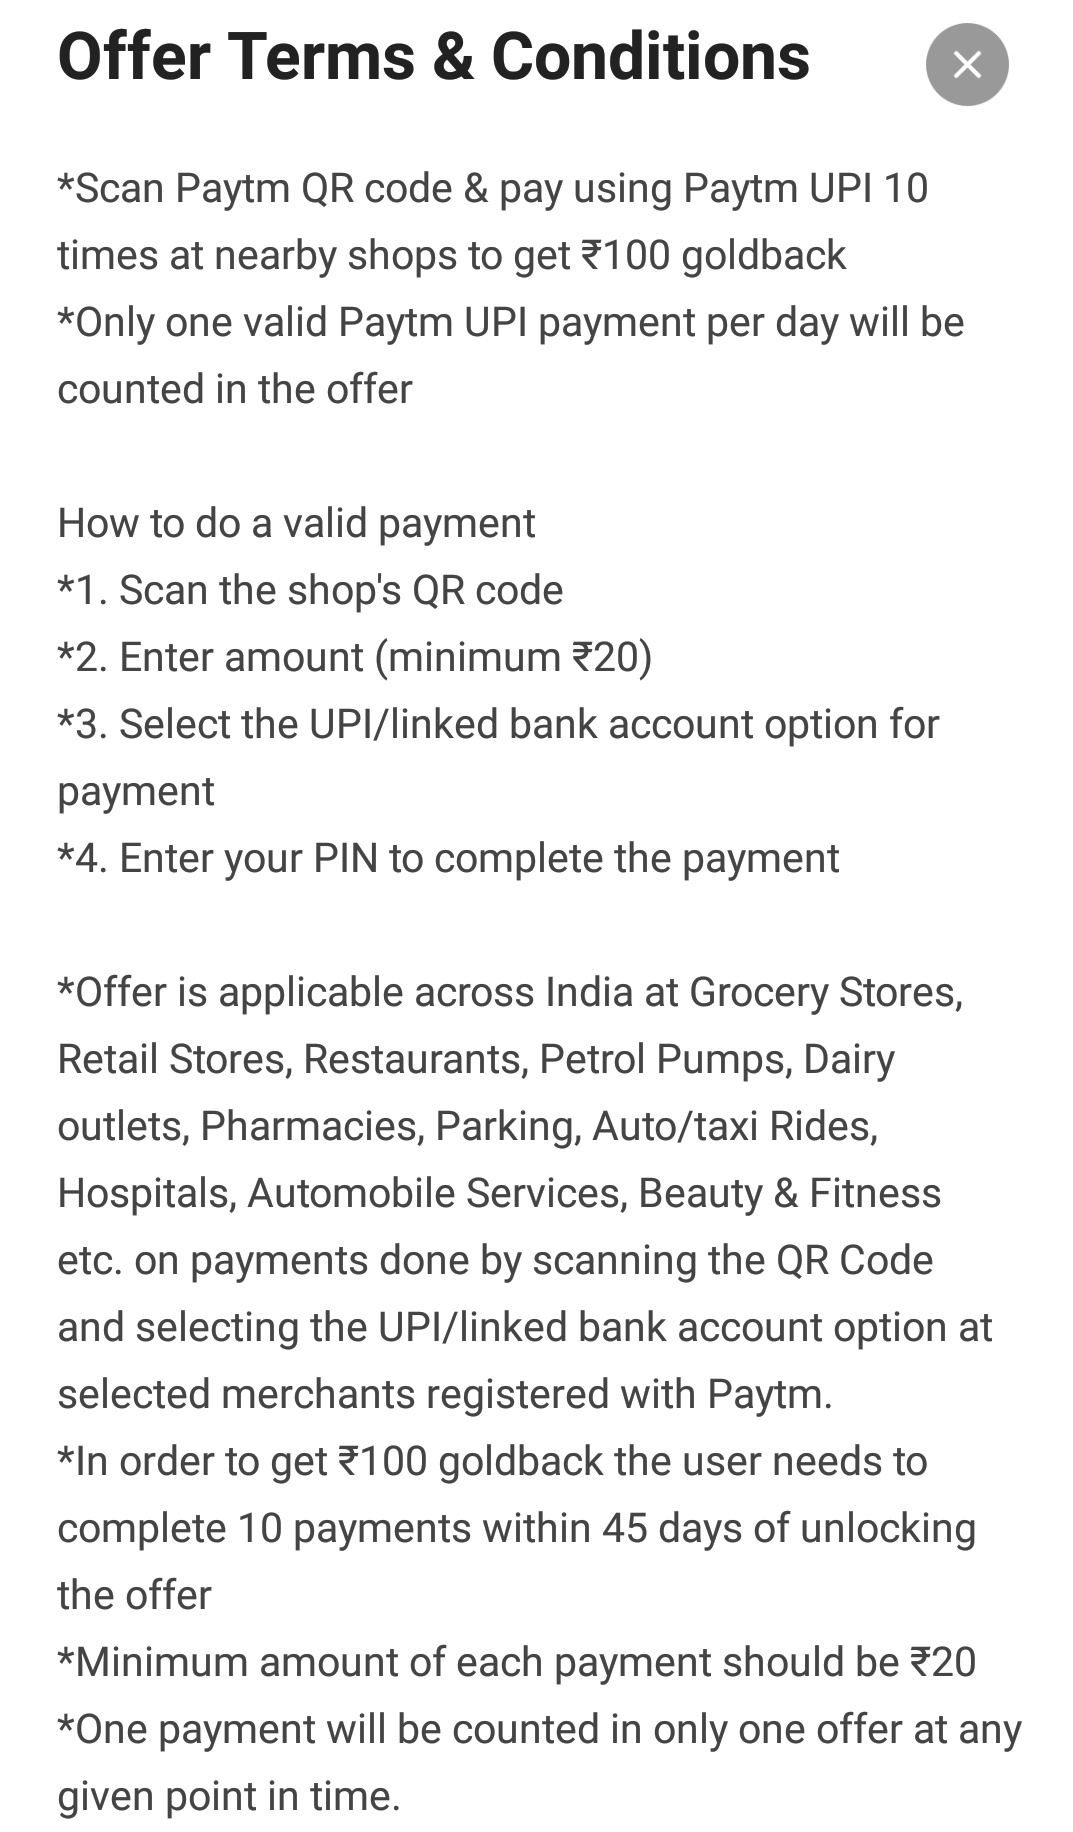 Paytm 10 pe 100 at nearby shops using UPI - Get 100 gold